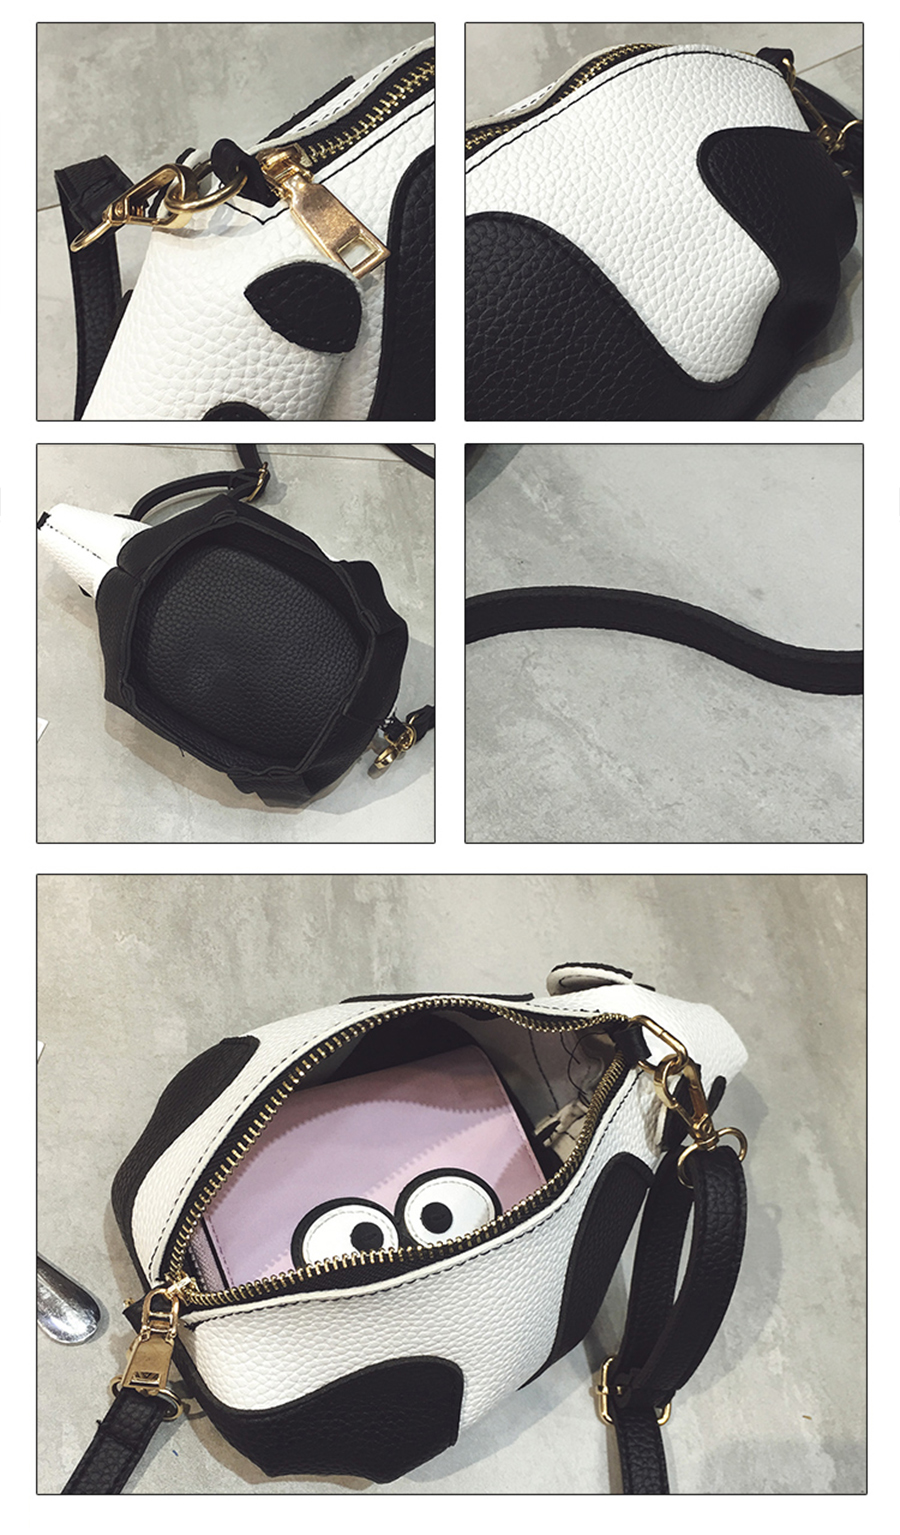 a7e6307bc188 Funny Design Cartoon New Cute Panda Shoulder Bag Purse Handbags Women  Crossbody Messenger Bags for Girls Phone Bag Animal Crossbody Bags Ladies  Lovely PU ...